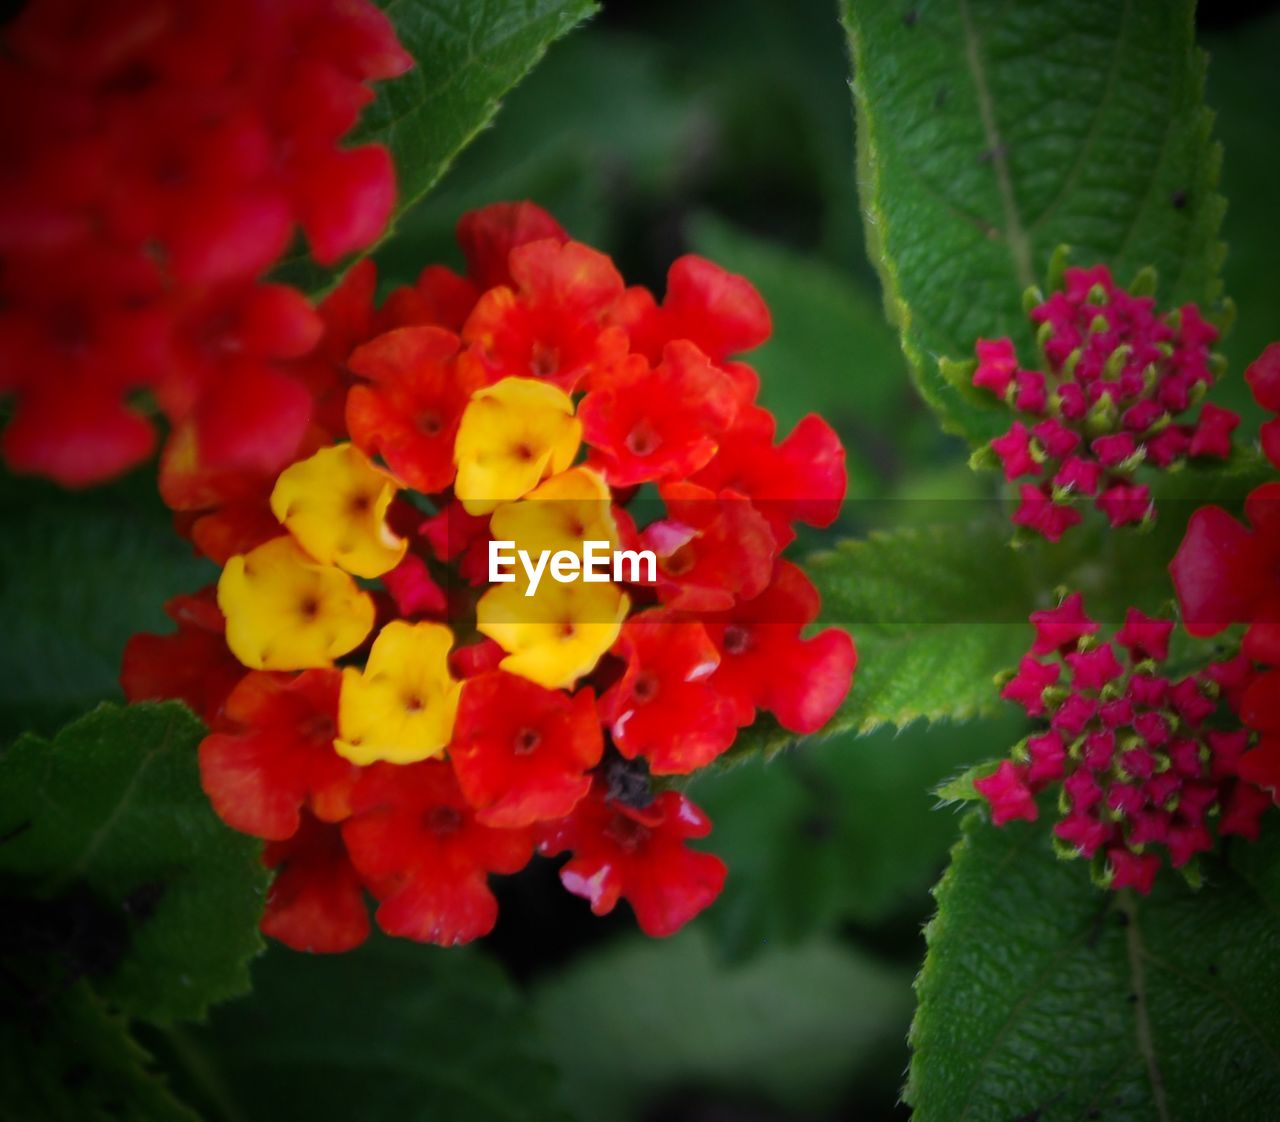 beauty in nature, flower, growth, freshness, fragility, petal, nature, plant, lantana, lantana camara, flower head, outdoors, green color, leaf, red, no people, park - man made space, day, blooming, yellow, close-up